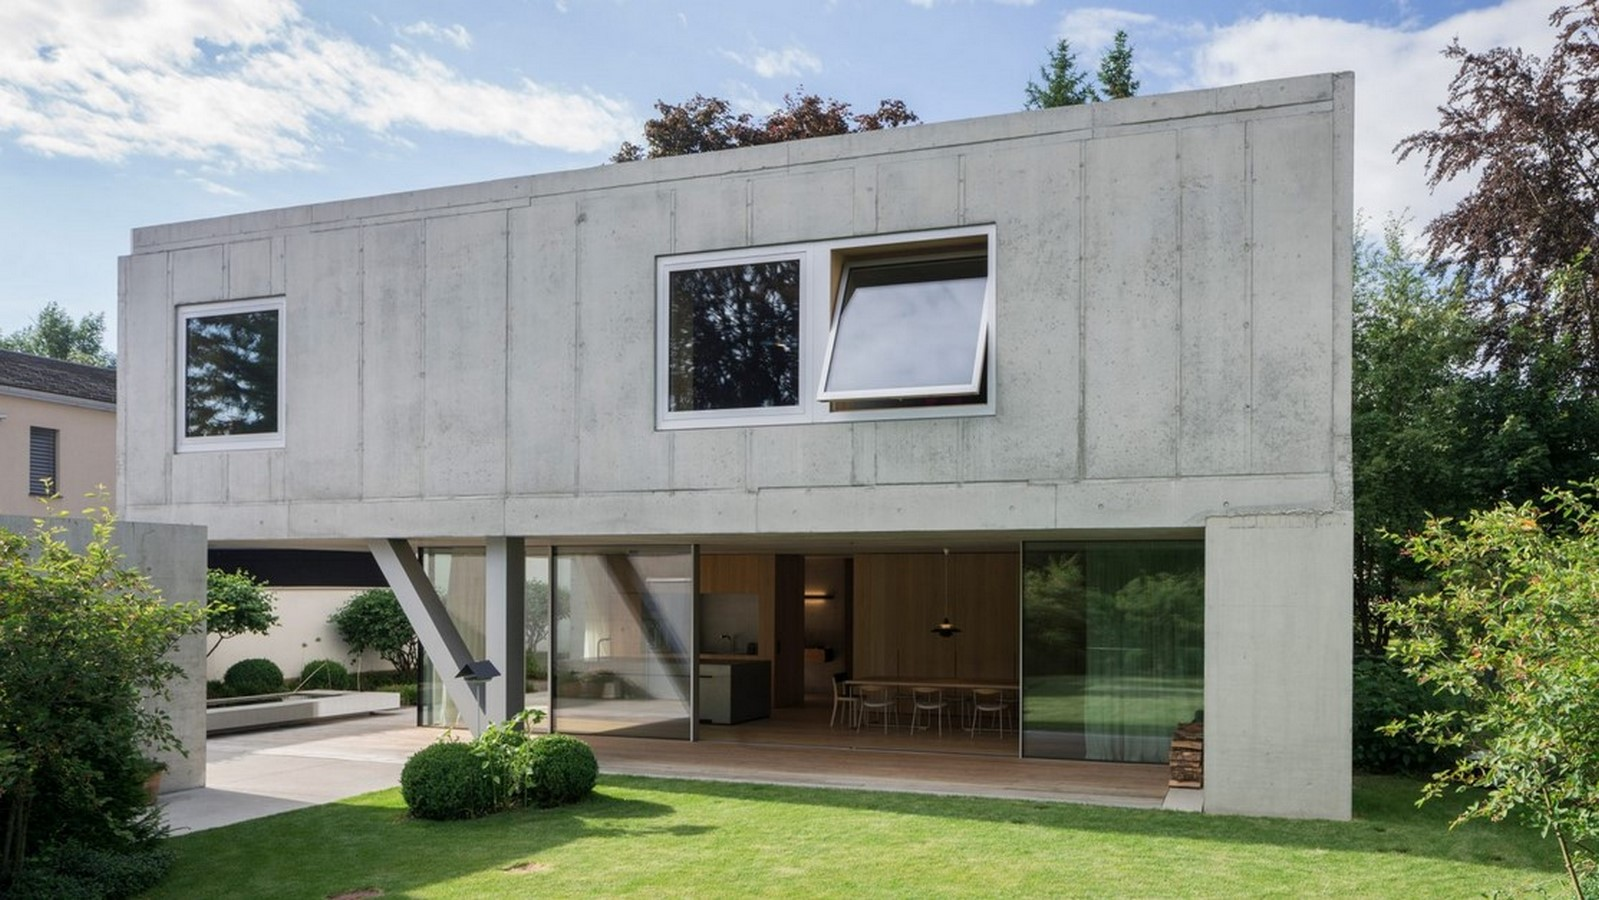 50 Examples of Modern concrete homes - Sheet46